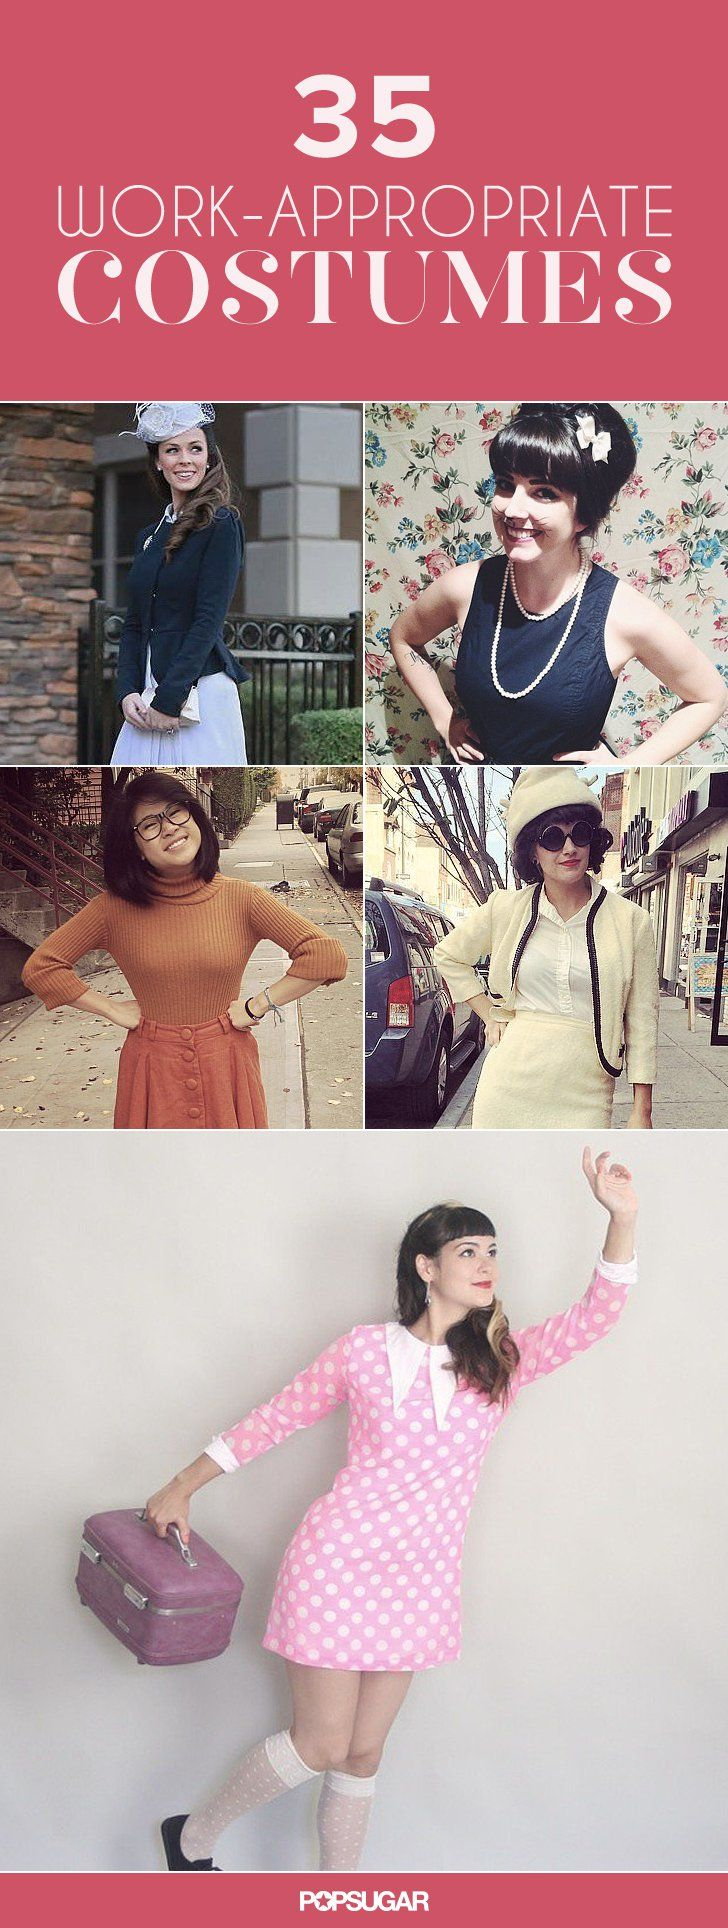 35 Work-Appropriate Halloween Costumes That Keep It Classy